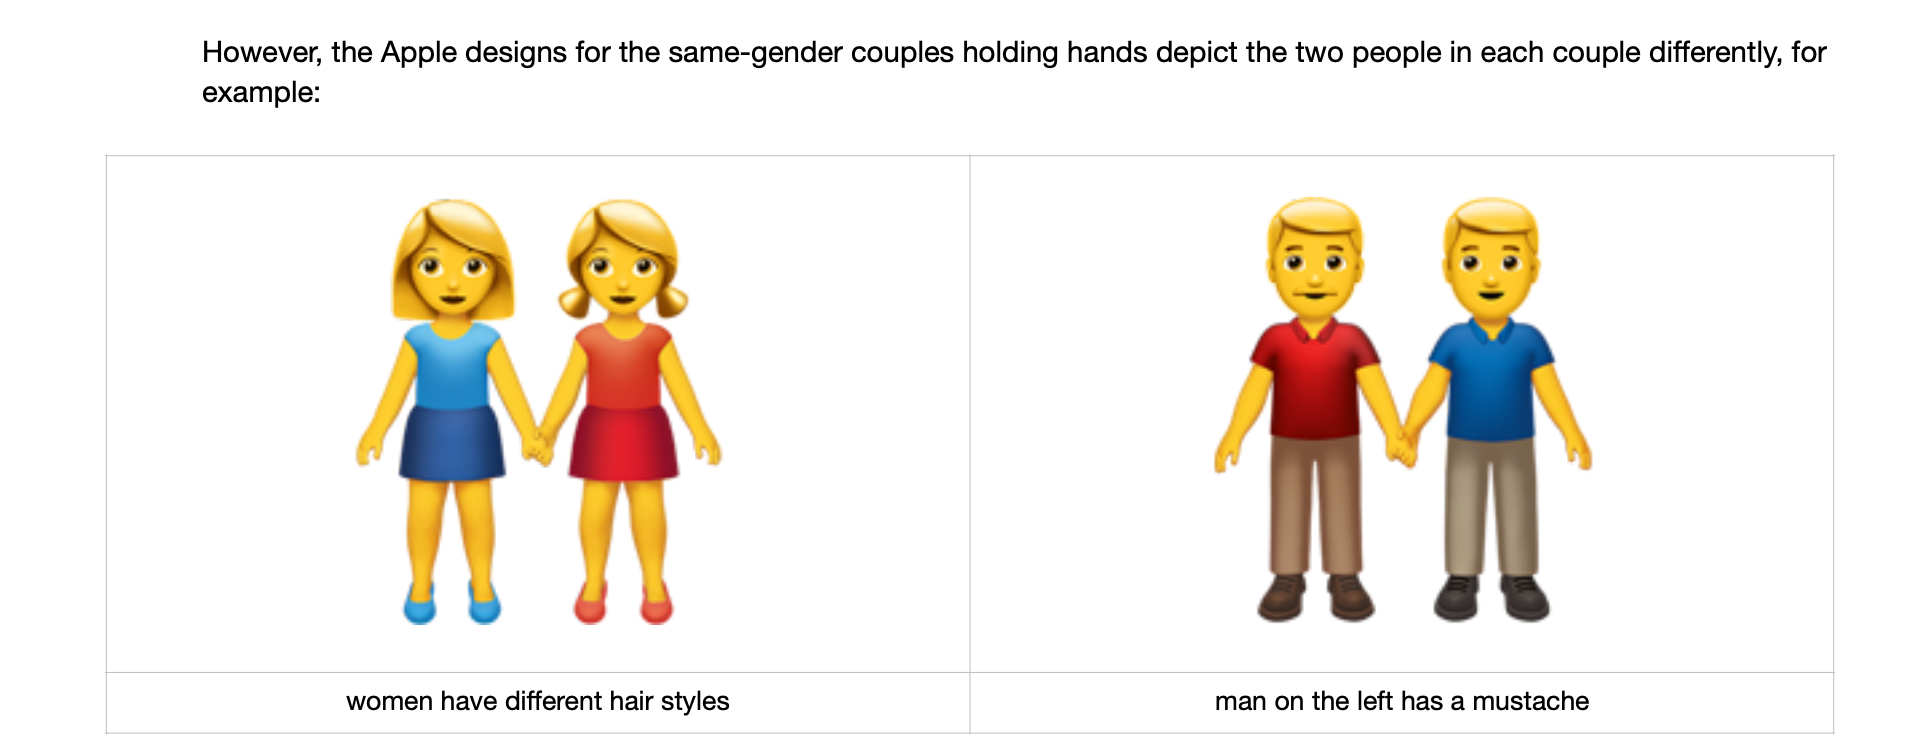 apple-emoji-hand-holding-proposal